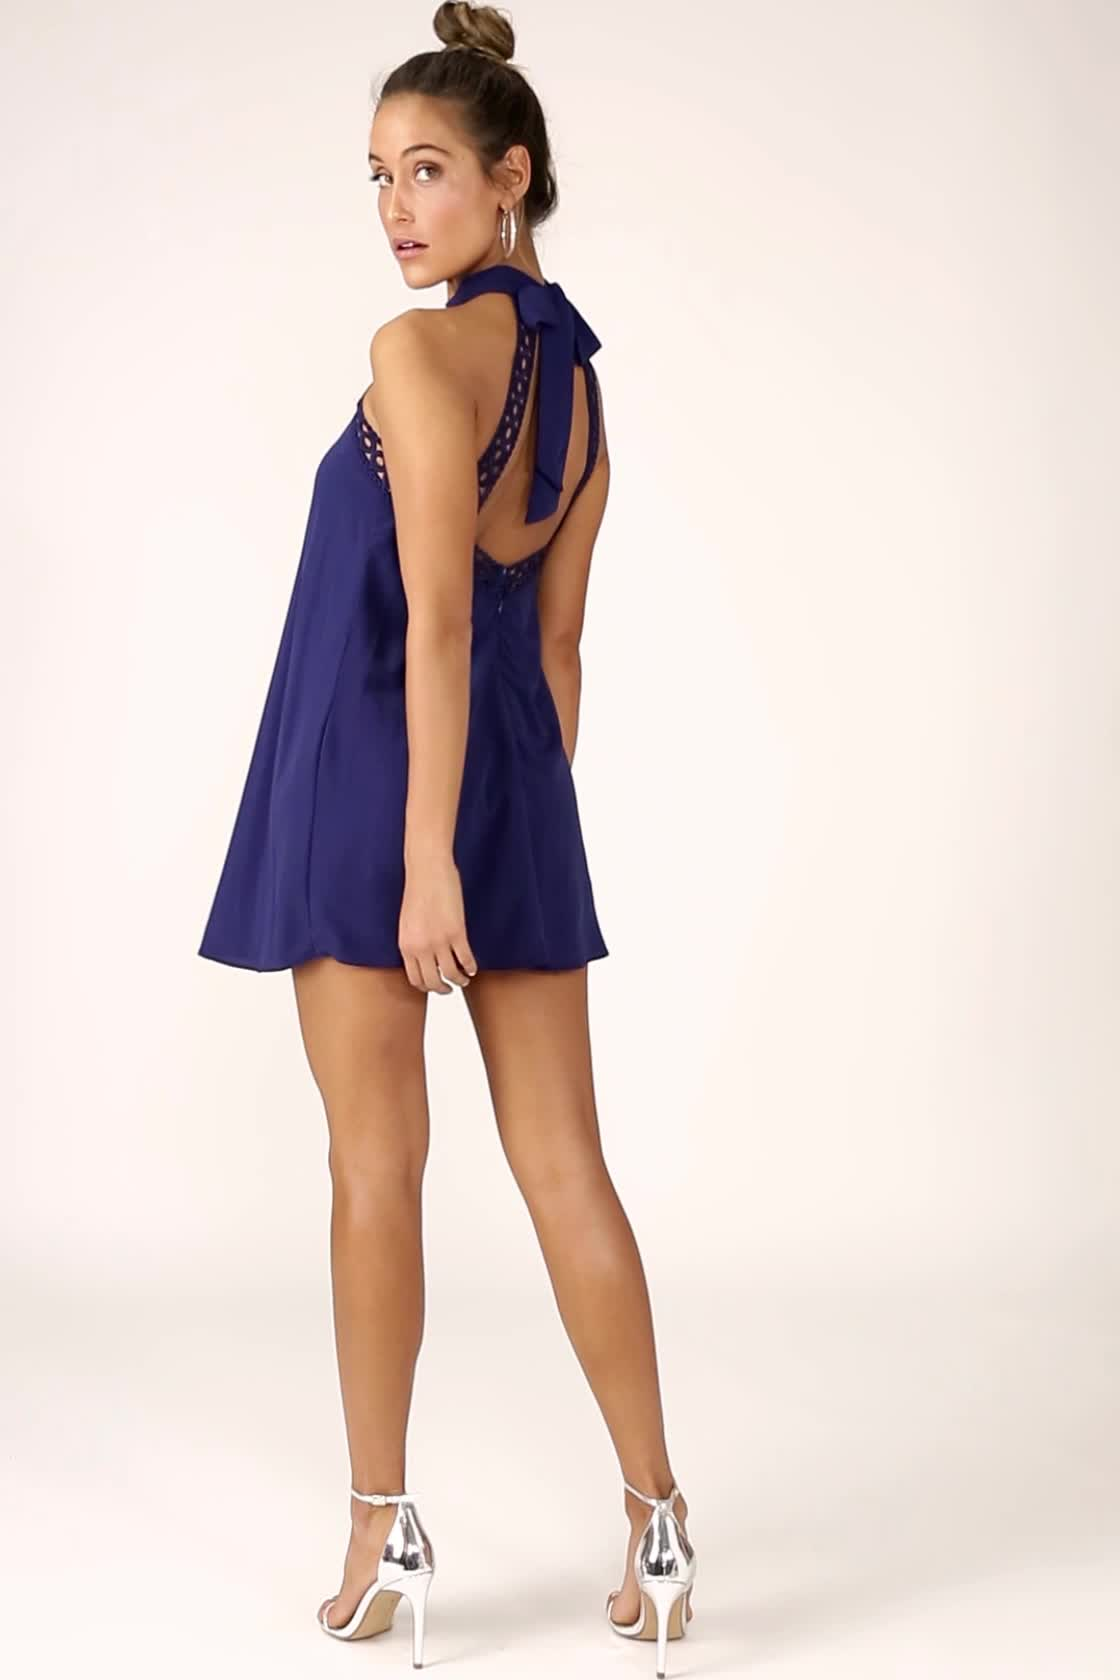 Cute Navy Blue Dress - Lace Dress - Halter Dress